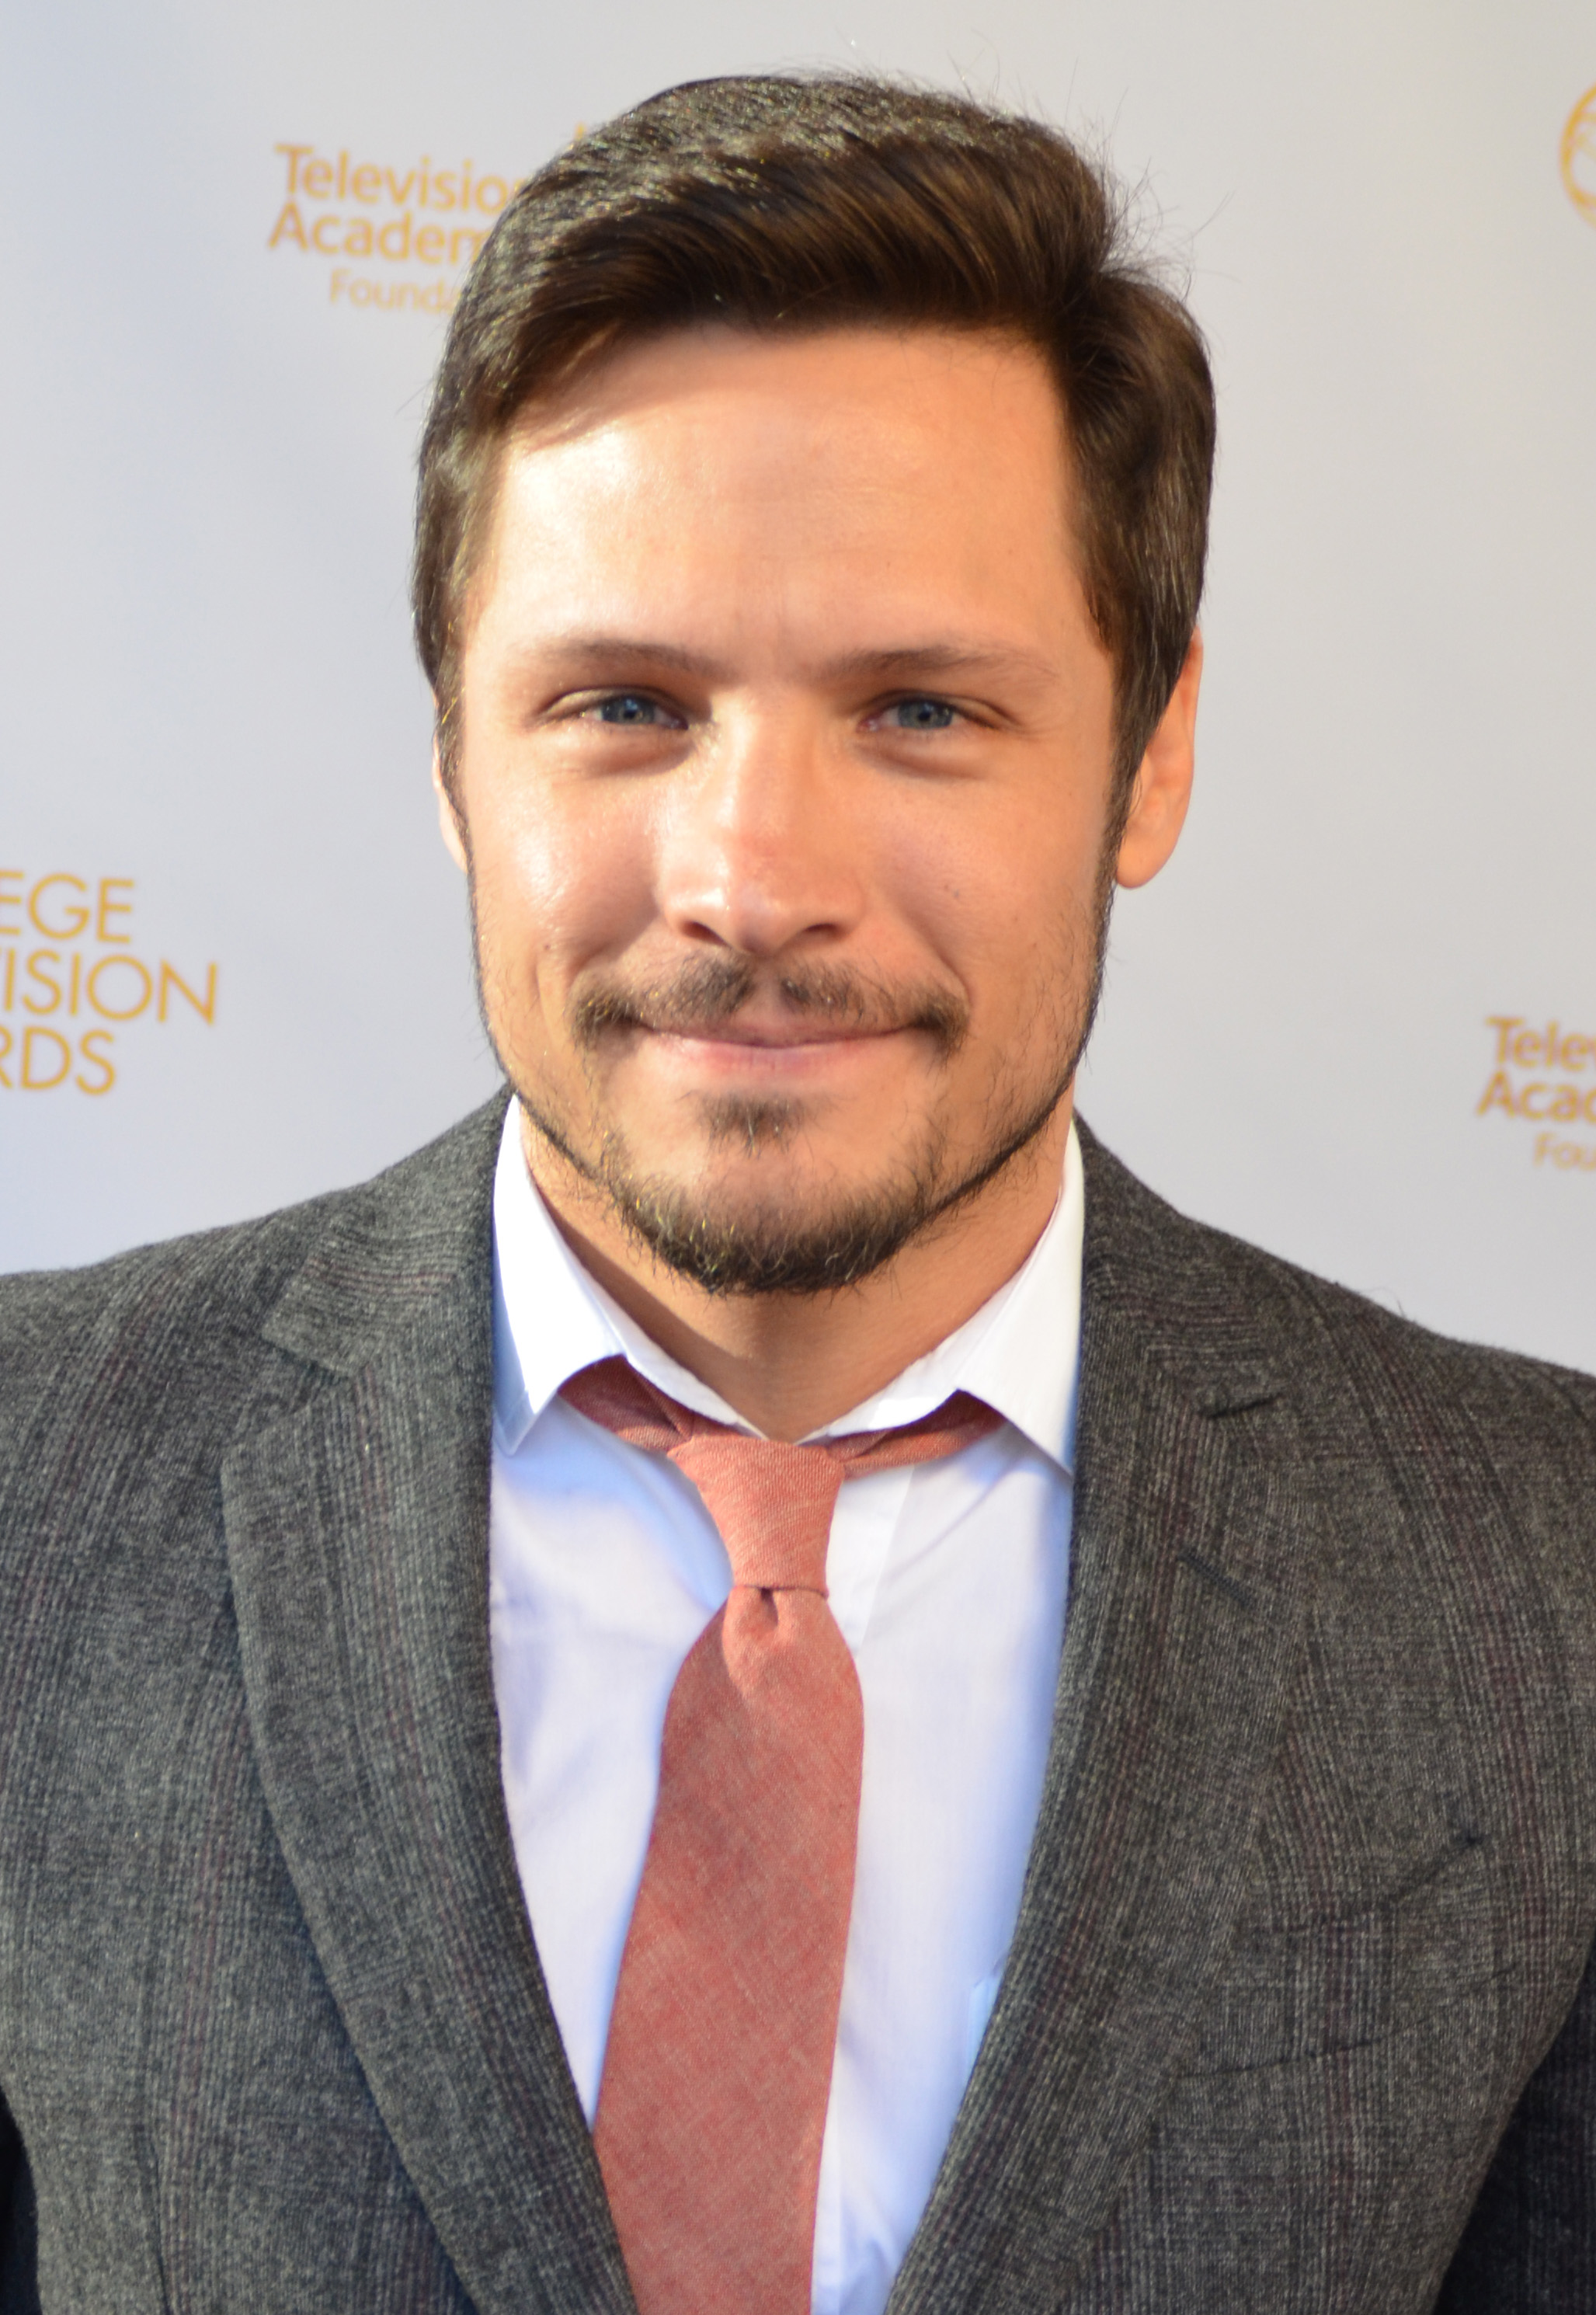 The 40-year old son of father Joseph A. Wechsler and mother Janet Ruth Wechsler Nick Wechsler in 2018 photo. Nick Wechsler earned a 0.32 million dollar salary - leaving the net worth at 2.7 million in 2018